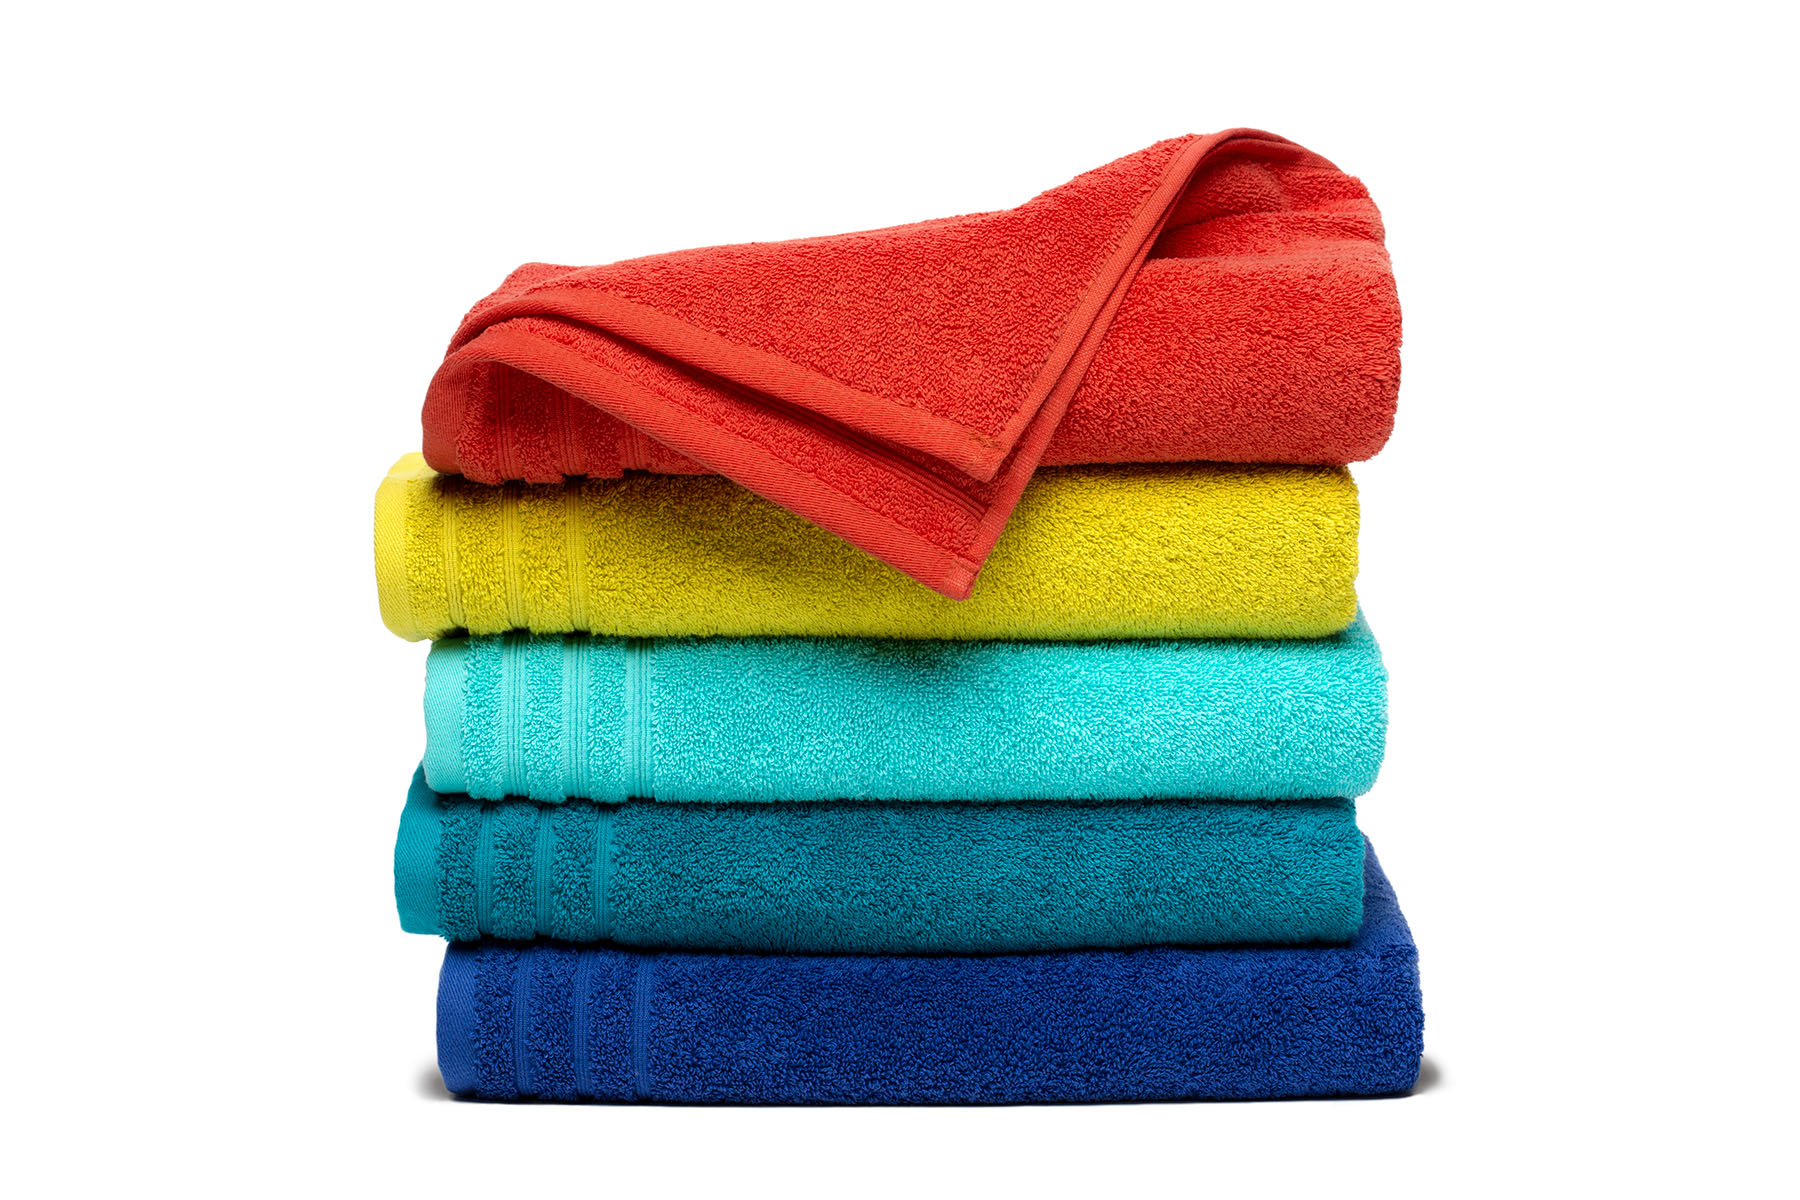 Towels-stack2-gabetoth